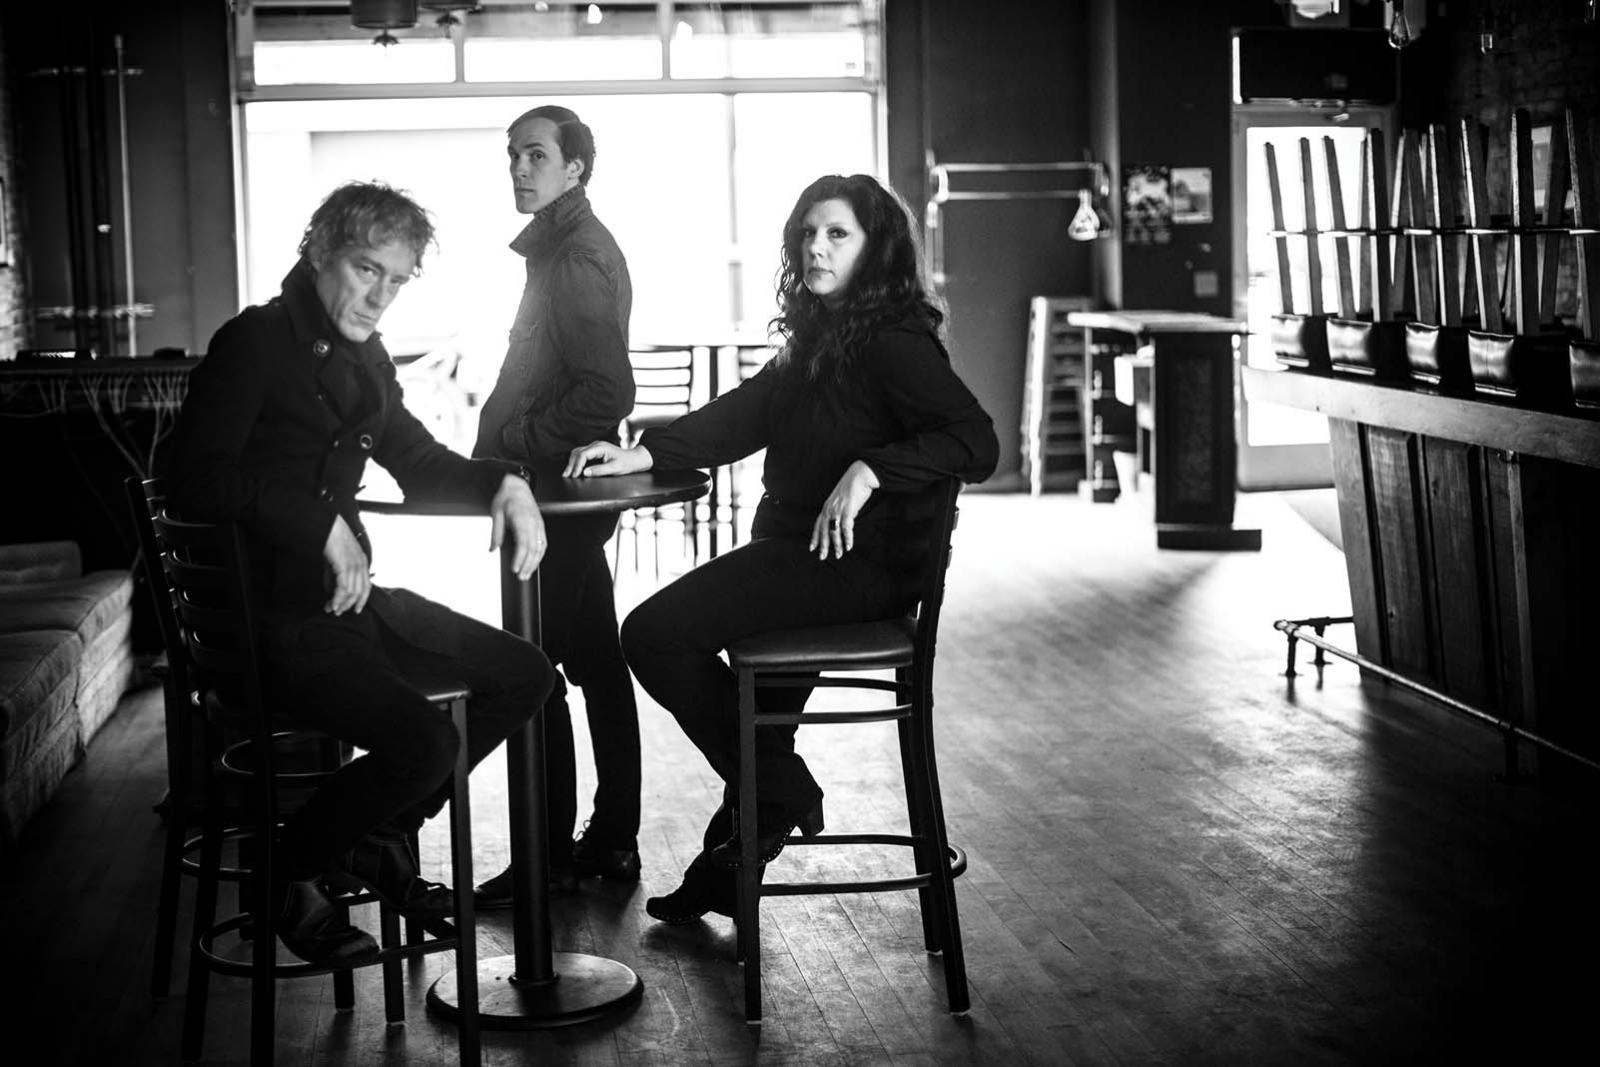 A black and white portrait of the band Low.